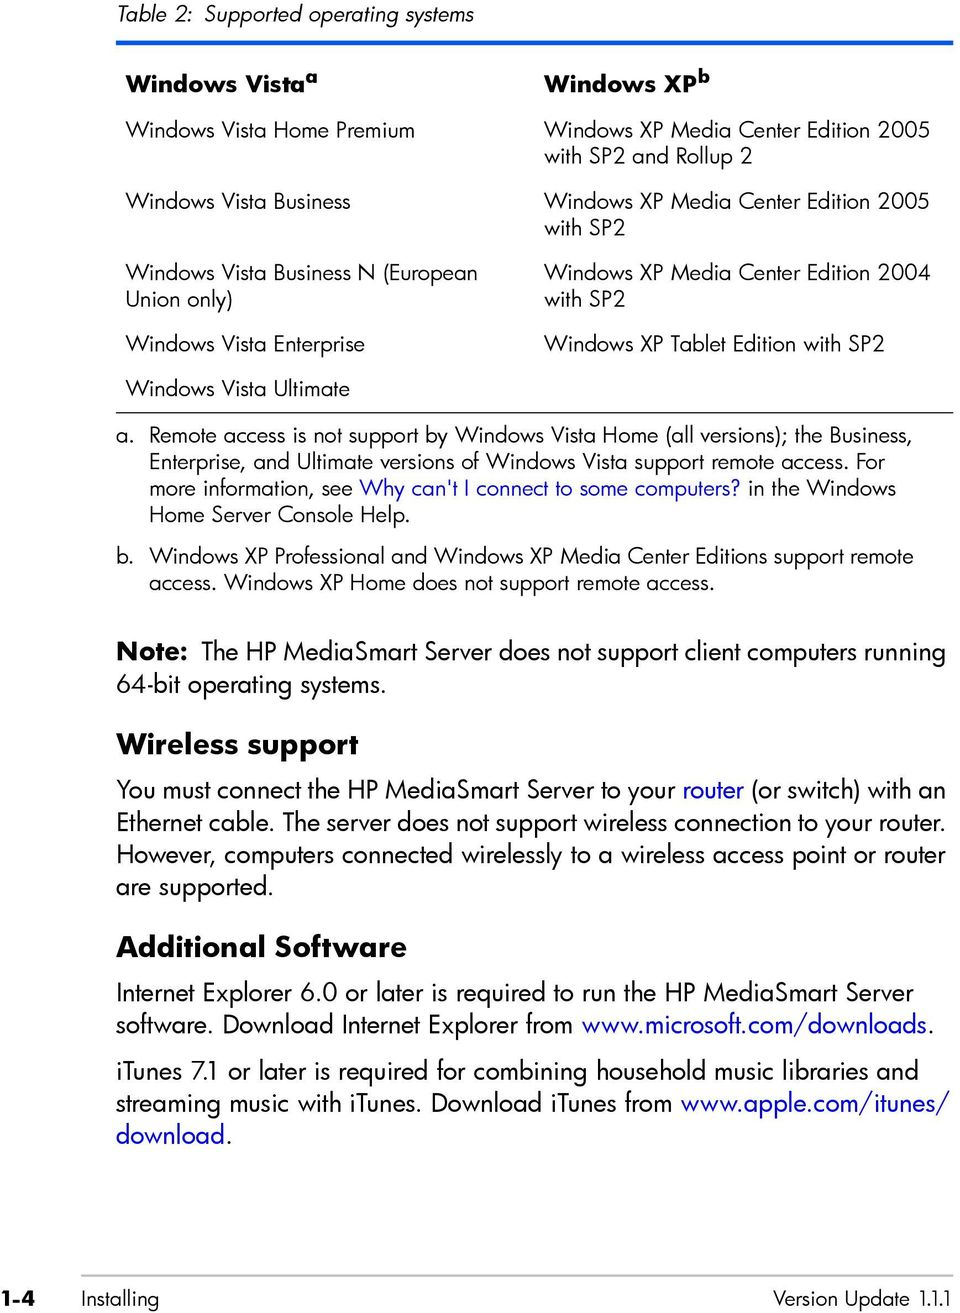 Remote access is not support by Windows Vista Home (all versions); the Business, Enterprise, and Ultimate versions of Windows Vista support remote access.